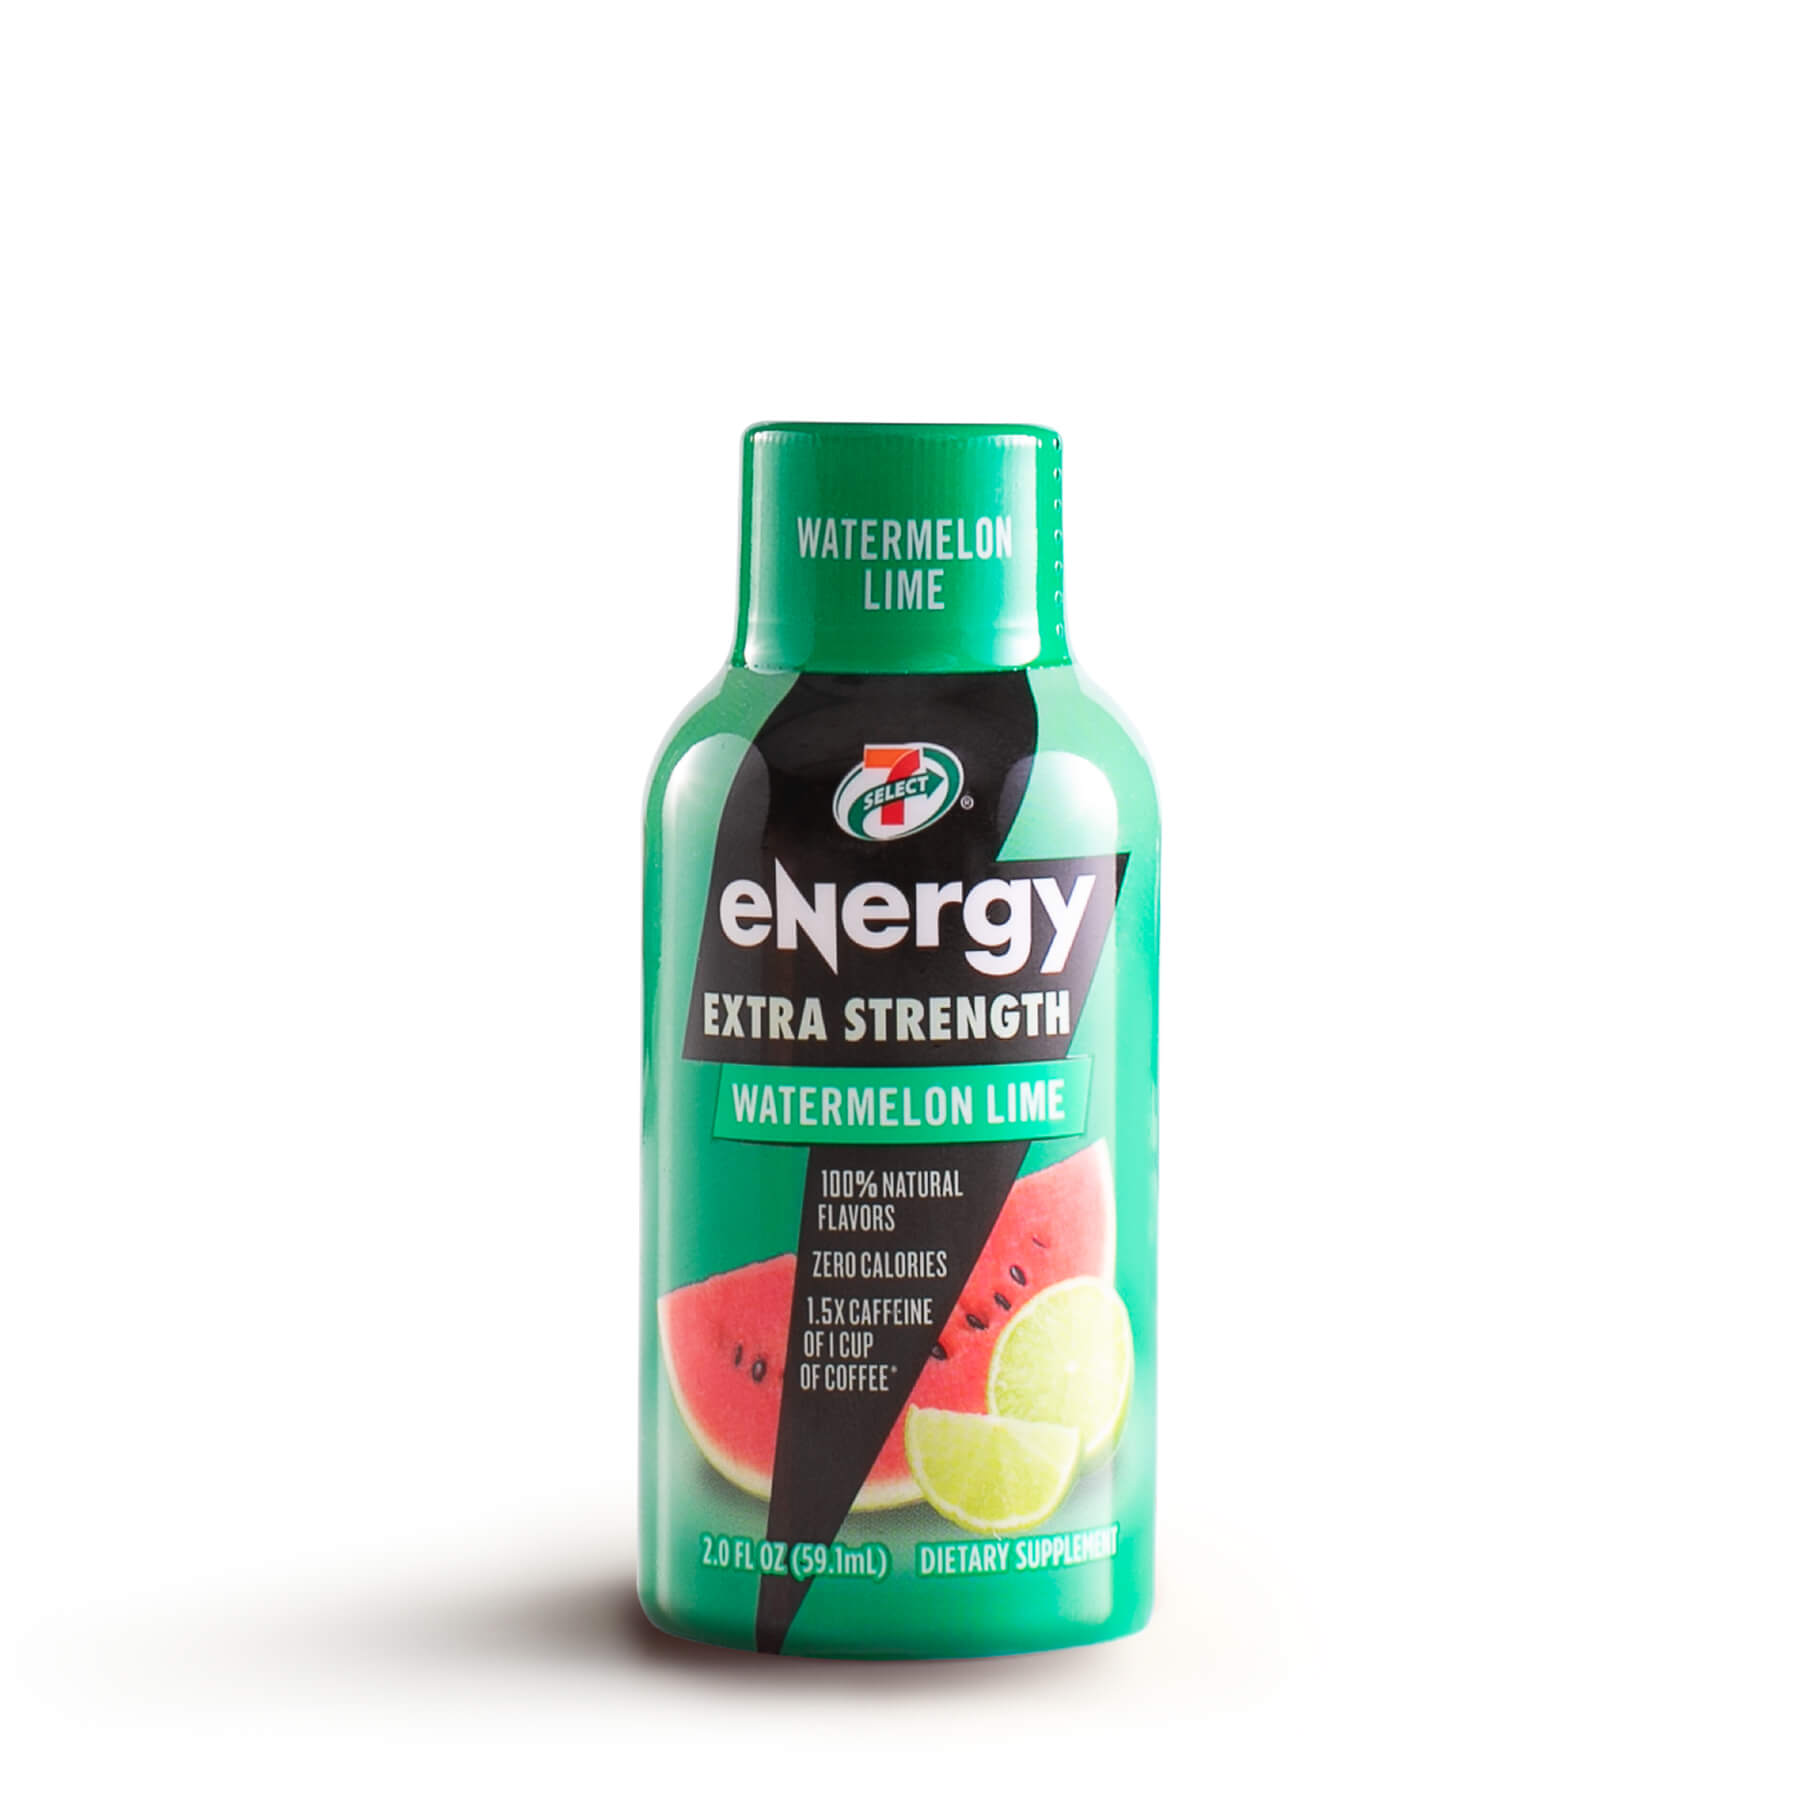 A single 7-Select extra strength energy shot in watermelon lime flavor